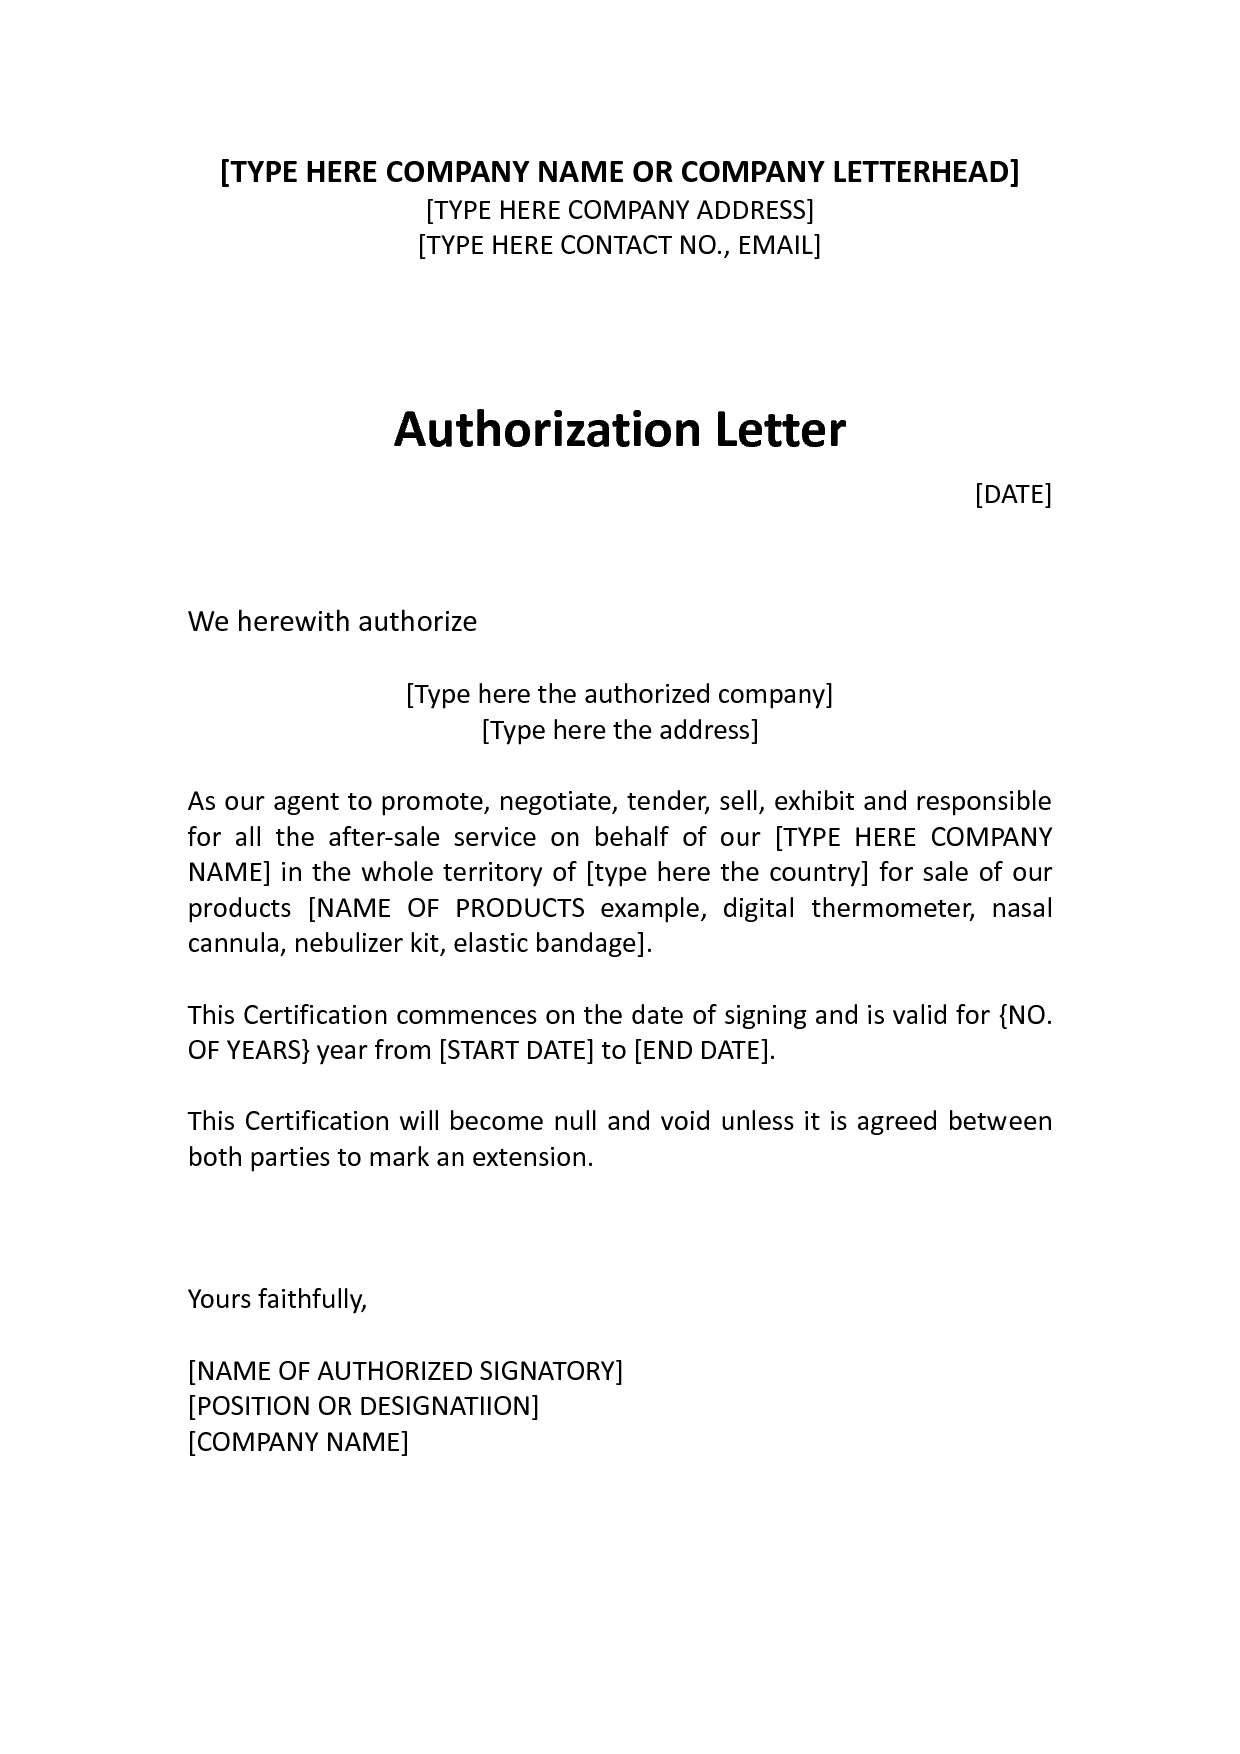 Constructive Eviction Letter Template - Authorization Distributor Letter Sample Distributor Dealer